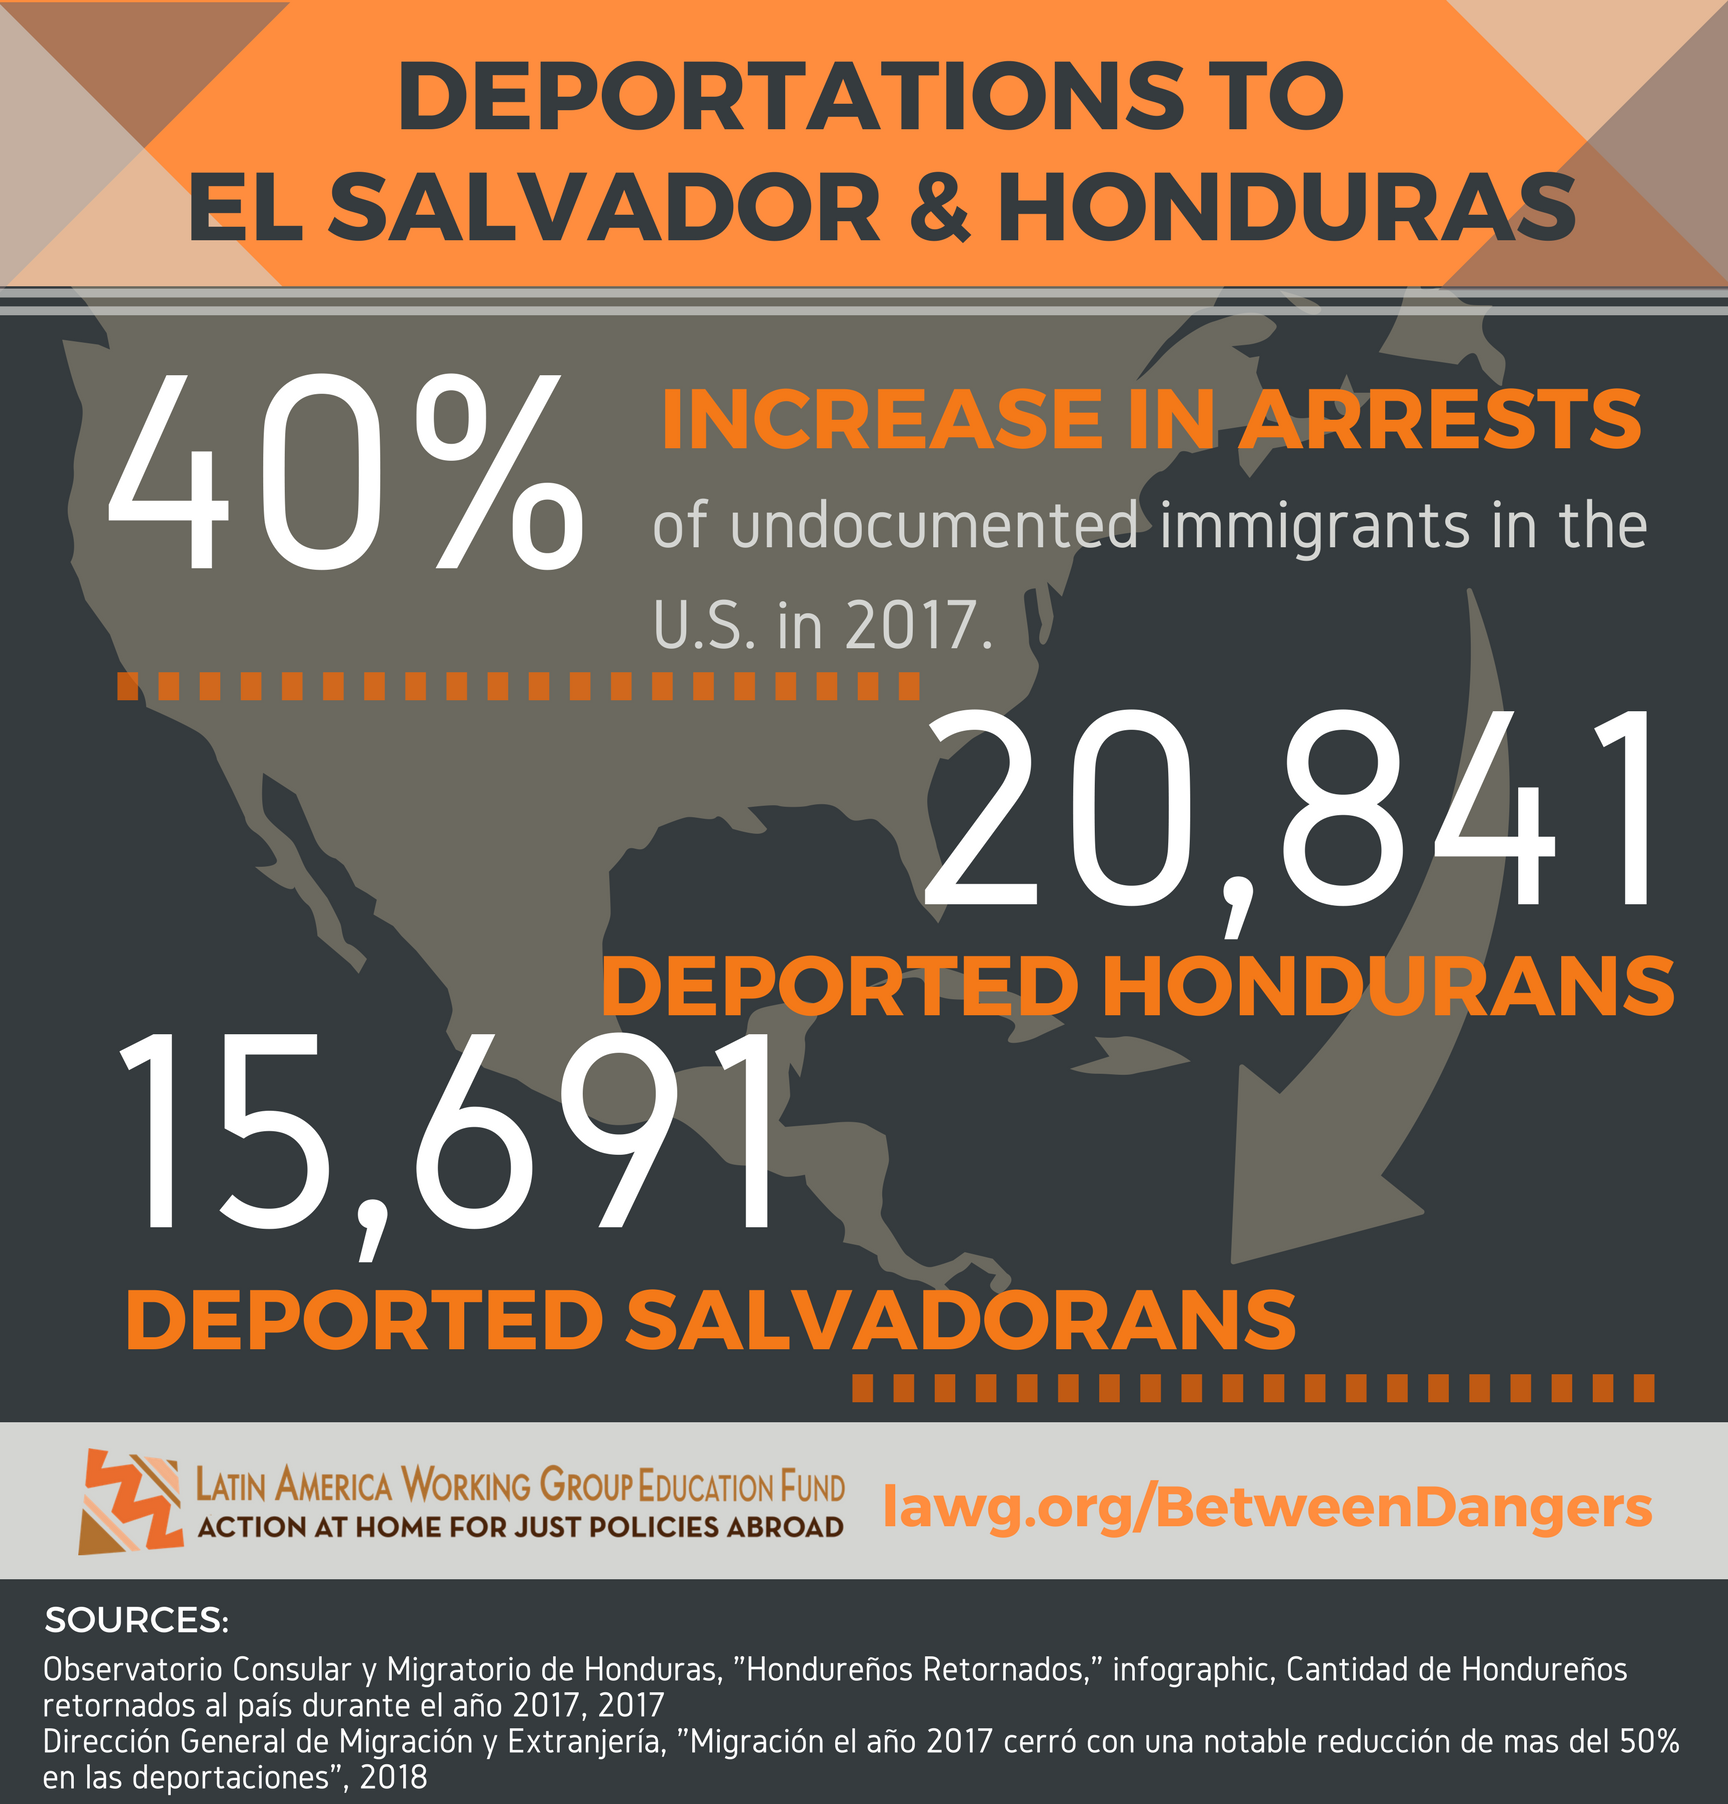 Deportations to H and ES Between Dangers